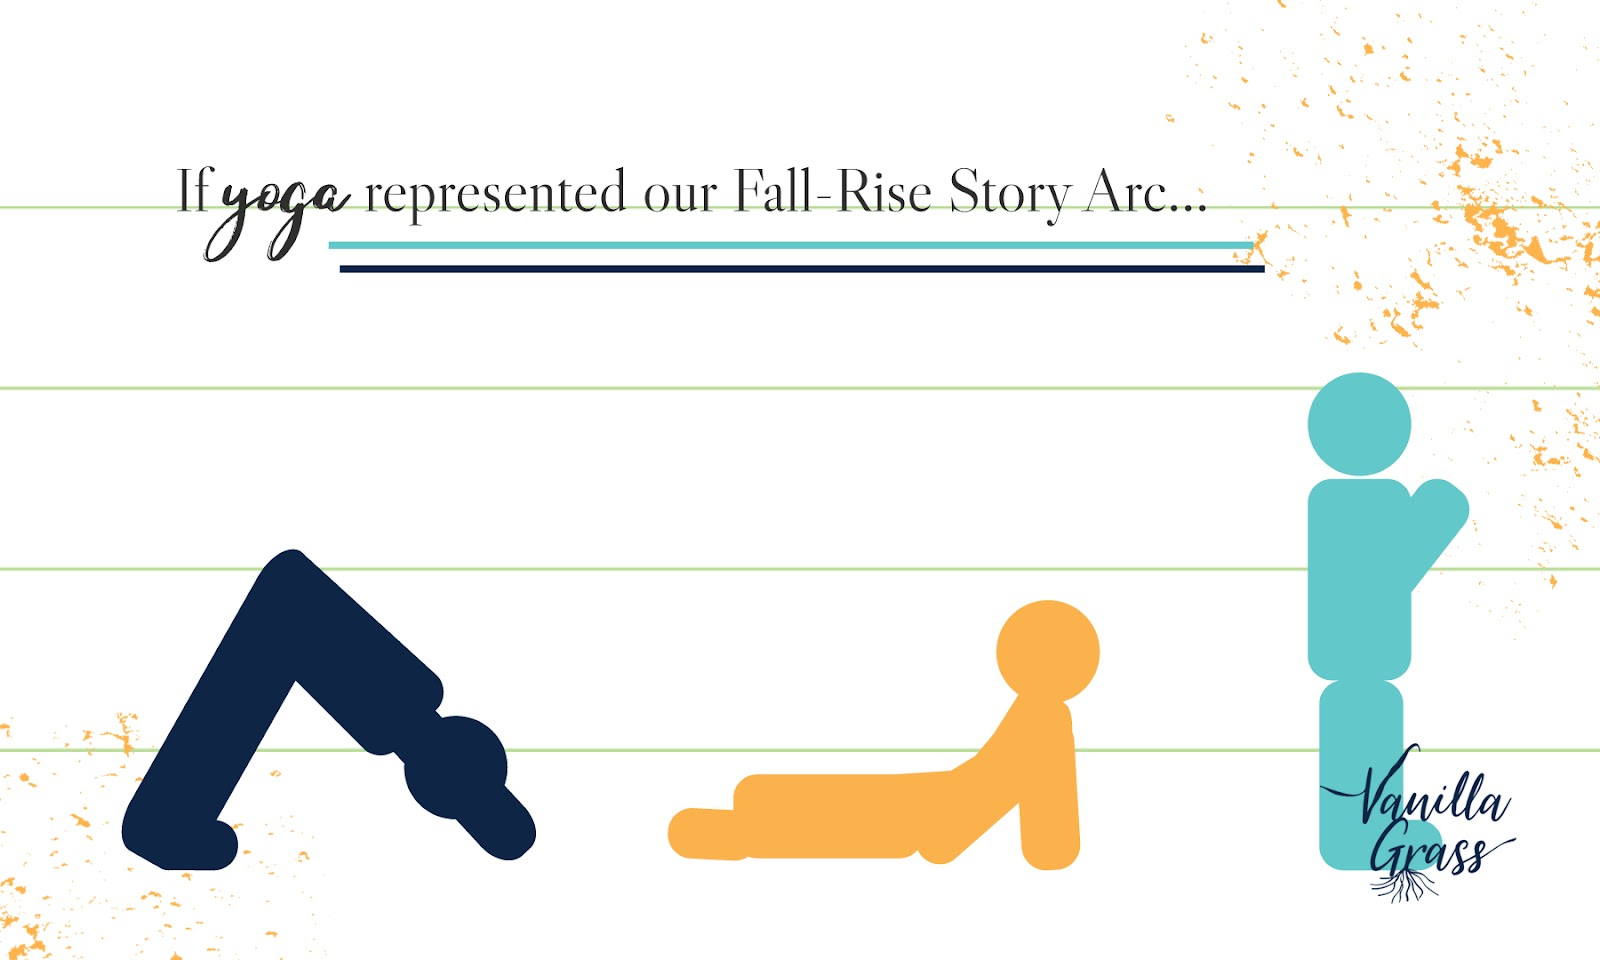 Writing Yoga graph of the Fall-Rise Story Arc under story plot structure examples.